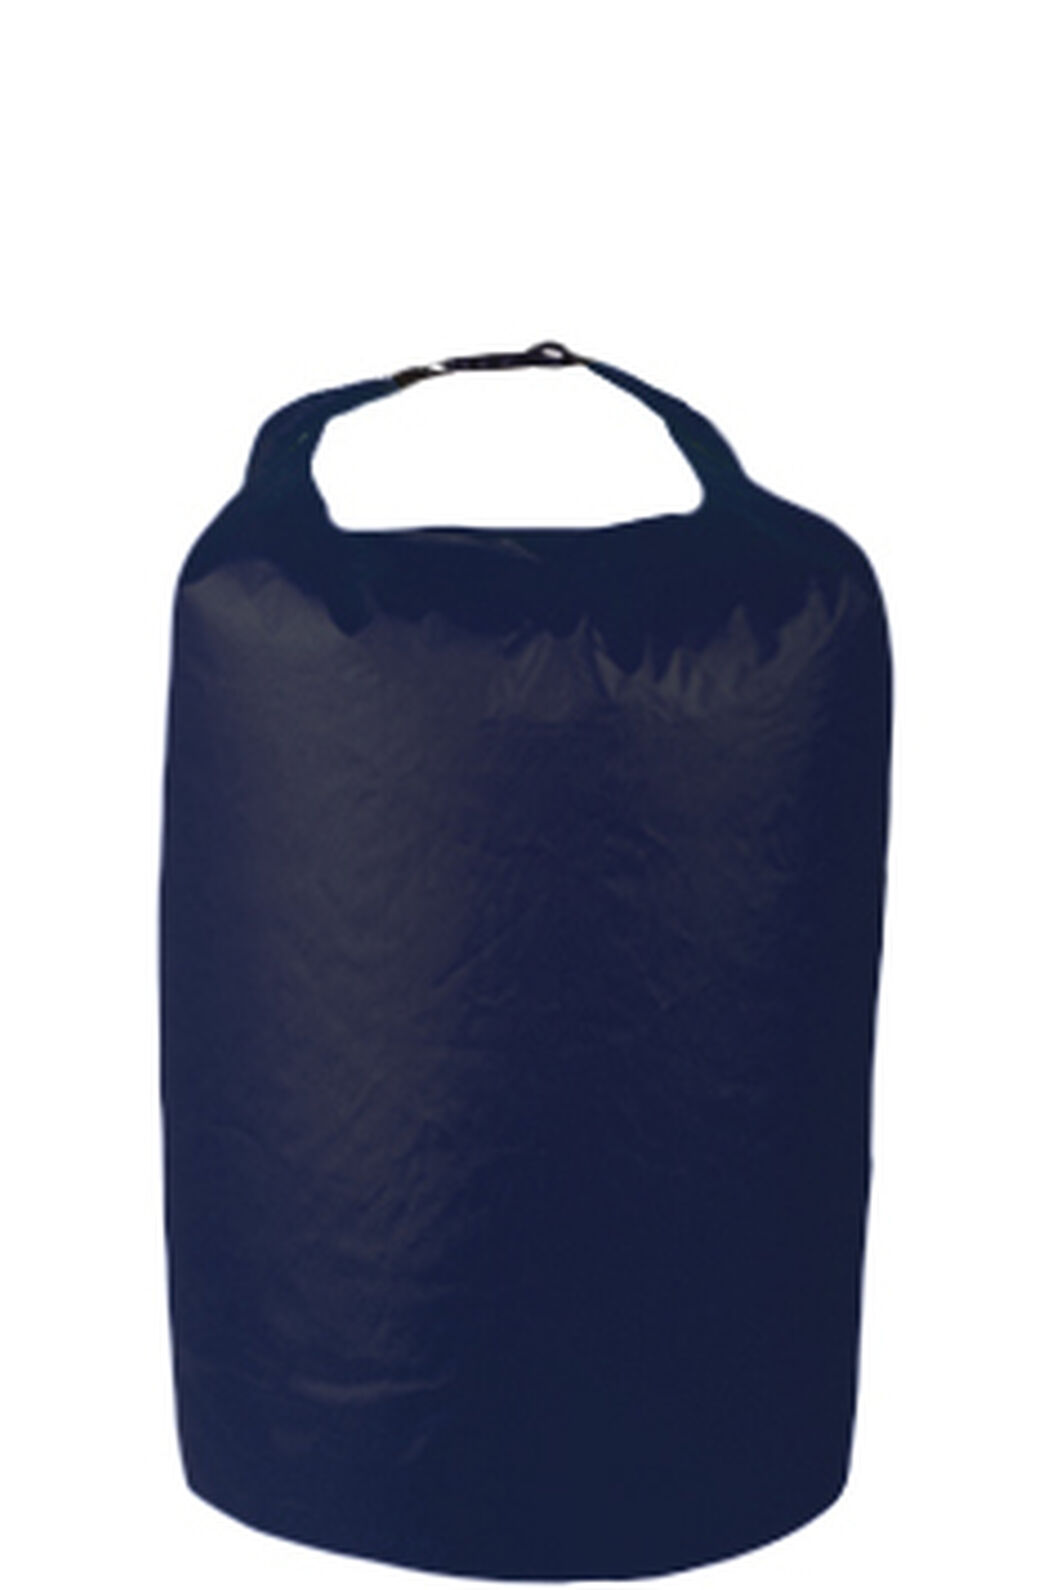 Macpac Ultralight Dry Bag 15 L, Sodalite Blue, hi-res